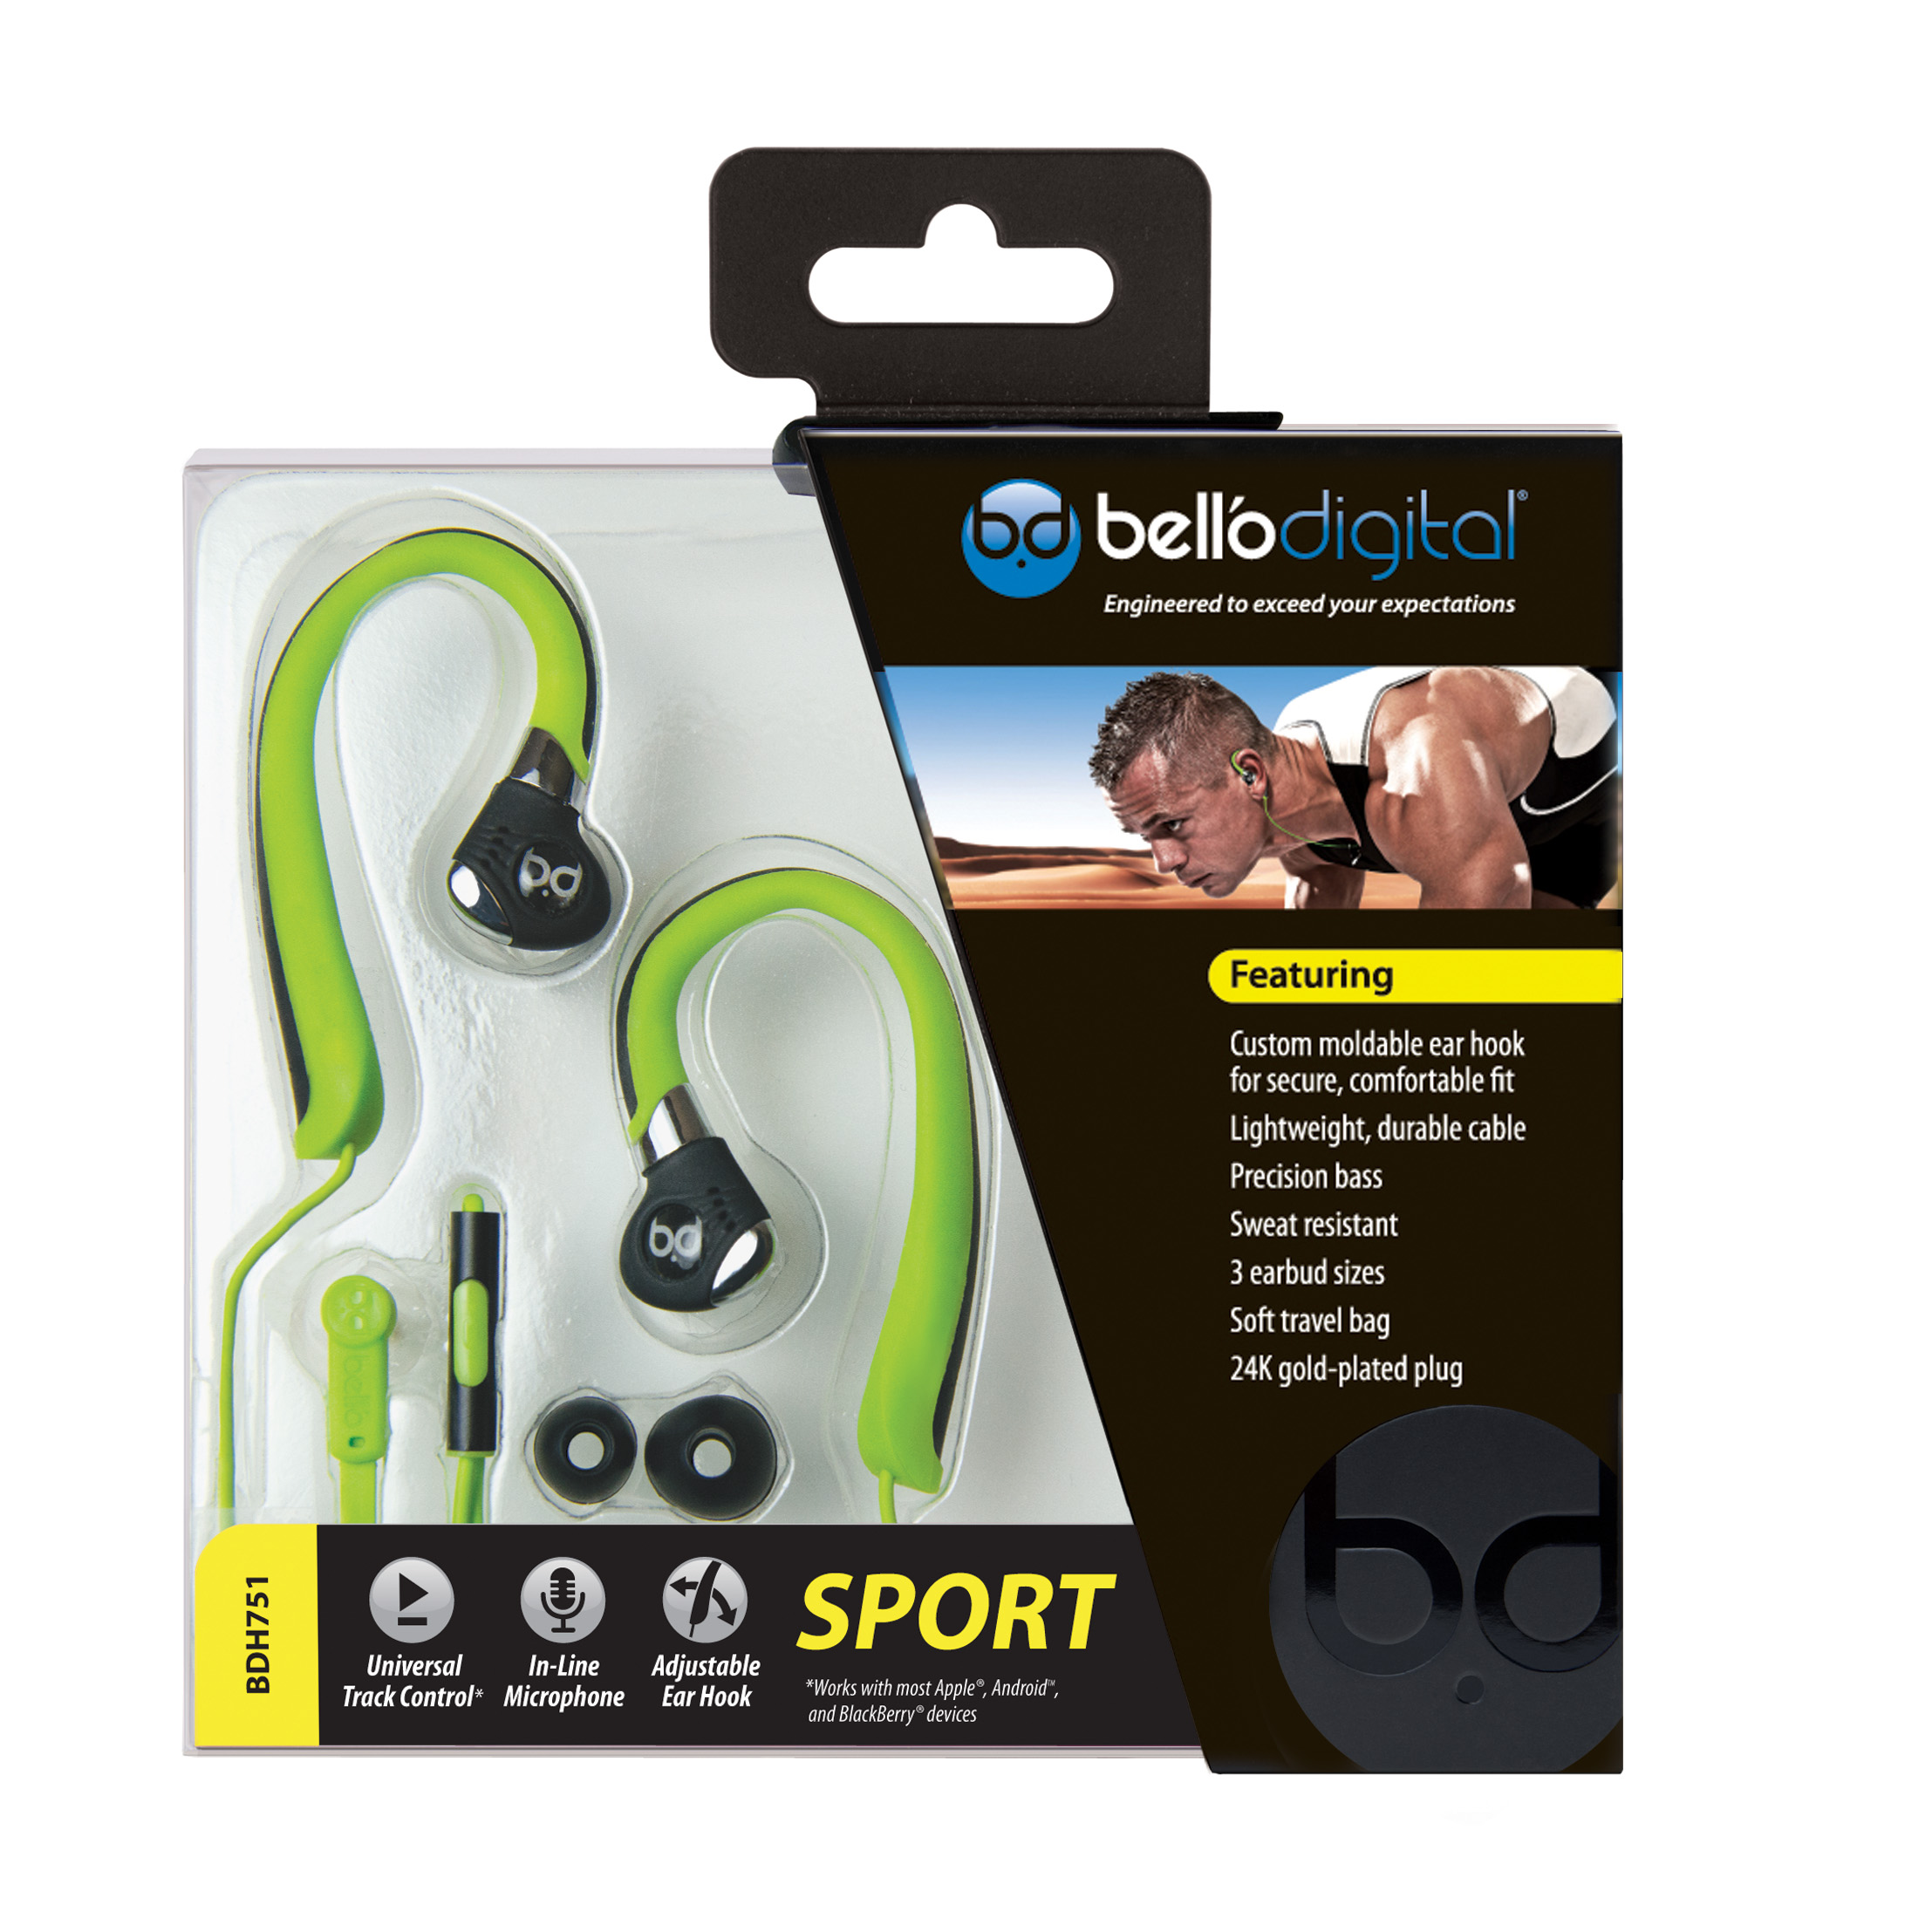 BDH751 Package Review: BellO Digital BDH751 Sport Earbuds